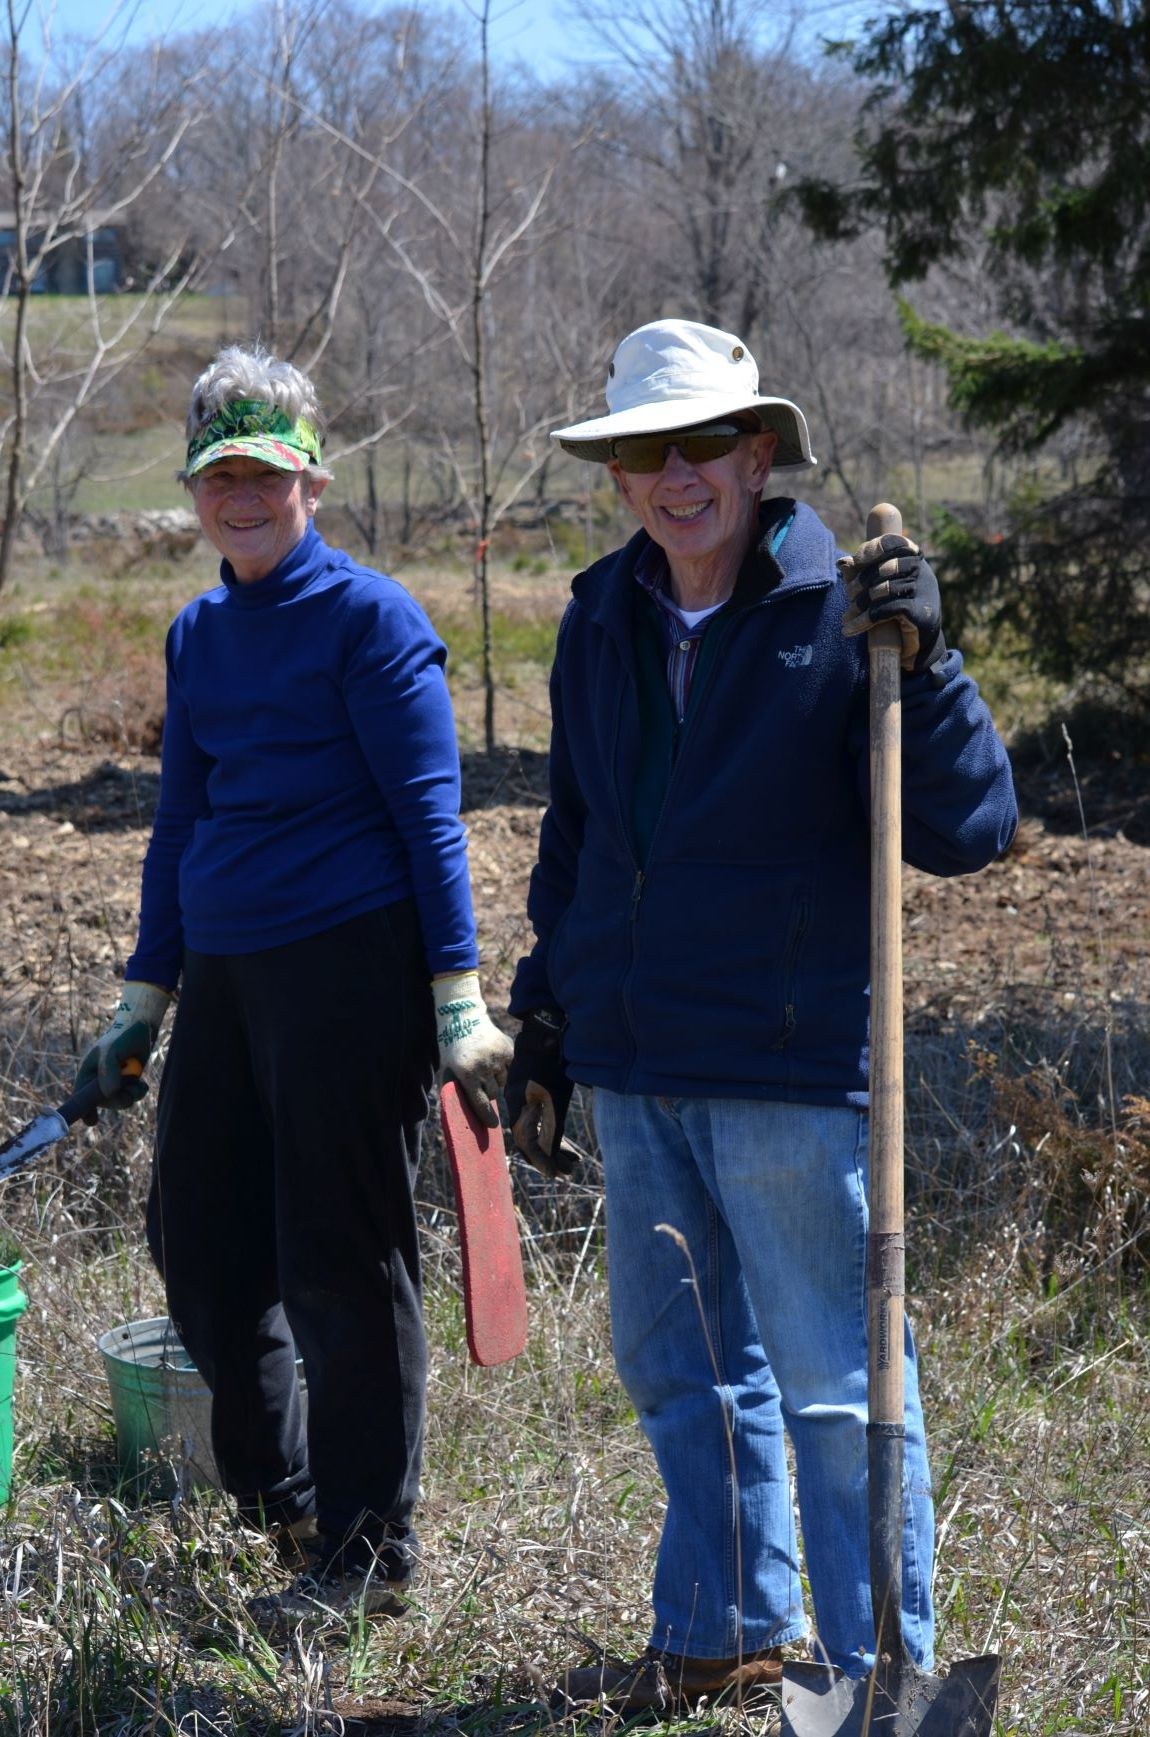 Mary and Dick Smythe, CCCDC Steering Committee members, plant trees at the Spring Public Tree Planting in Ellison Bay, WI on May 4, 2019.